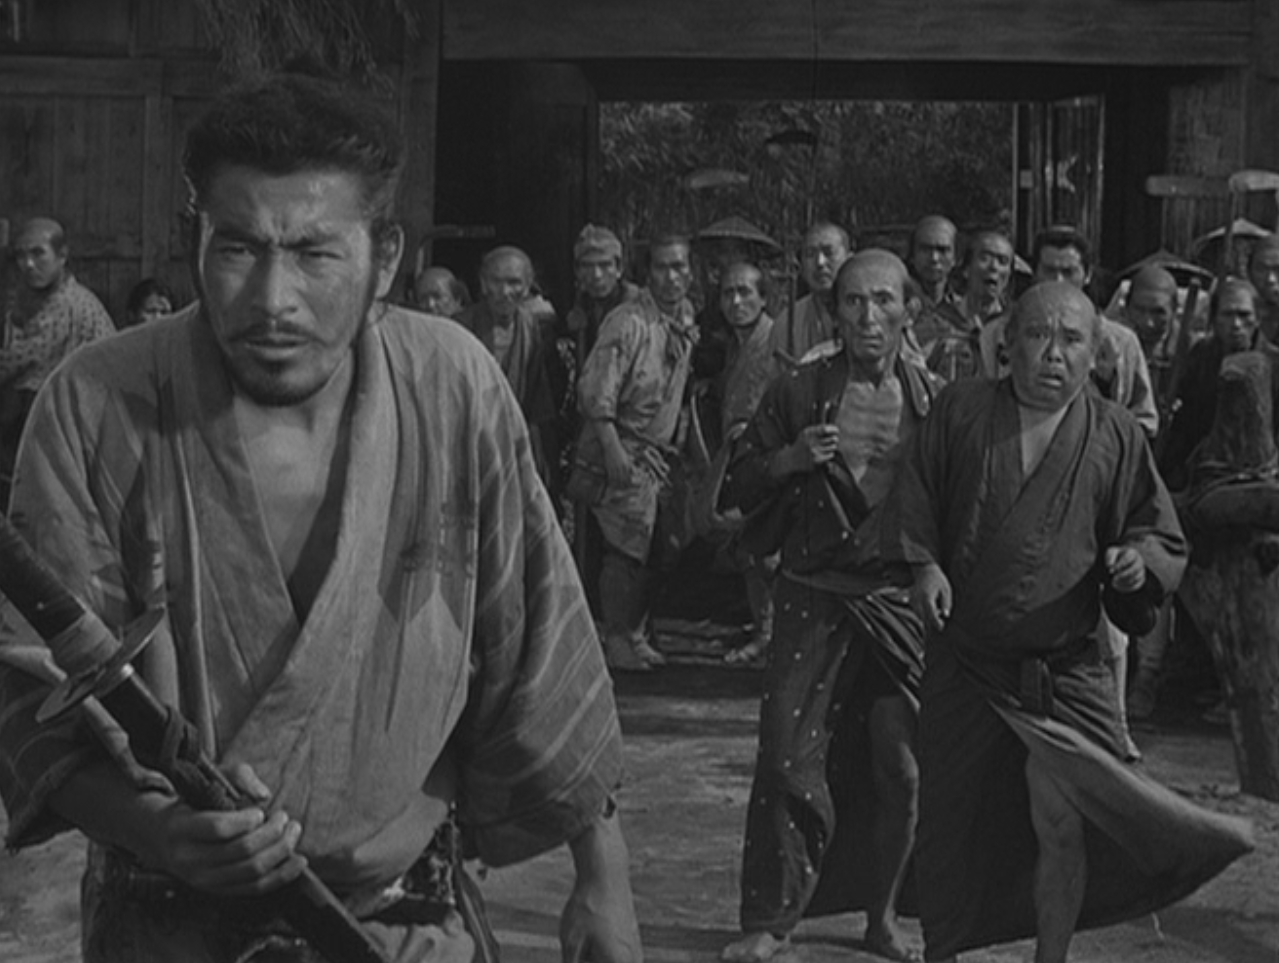 Print Page - Which of the seven samurai do you favor?